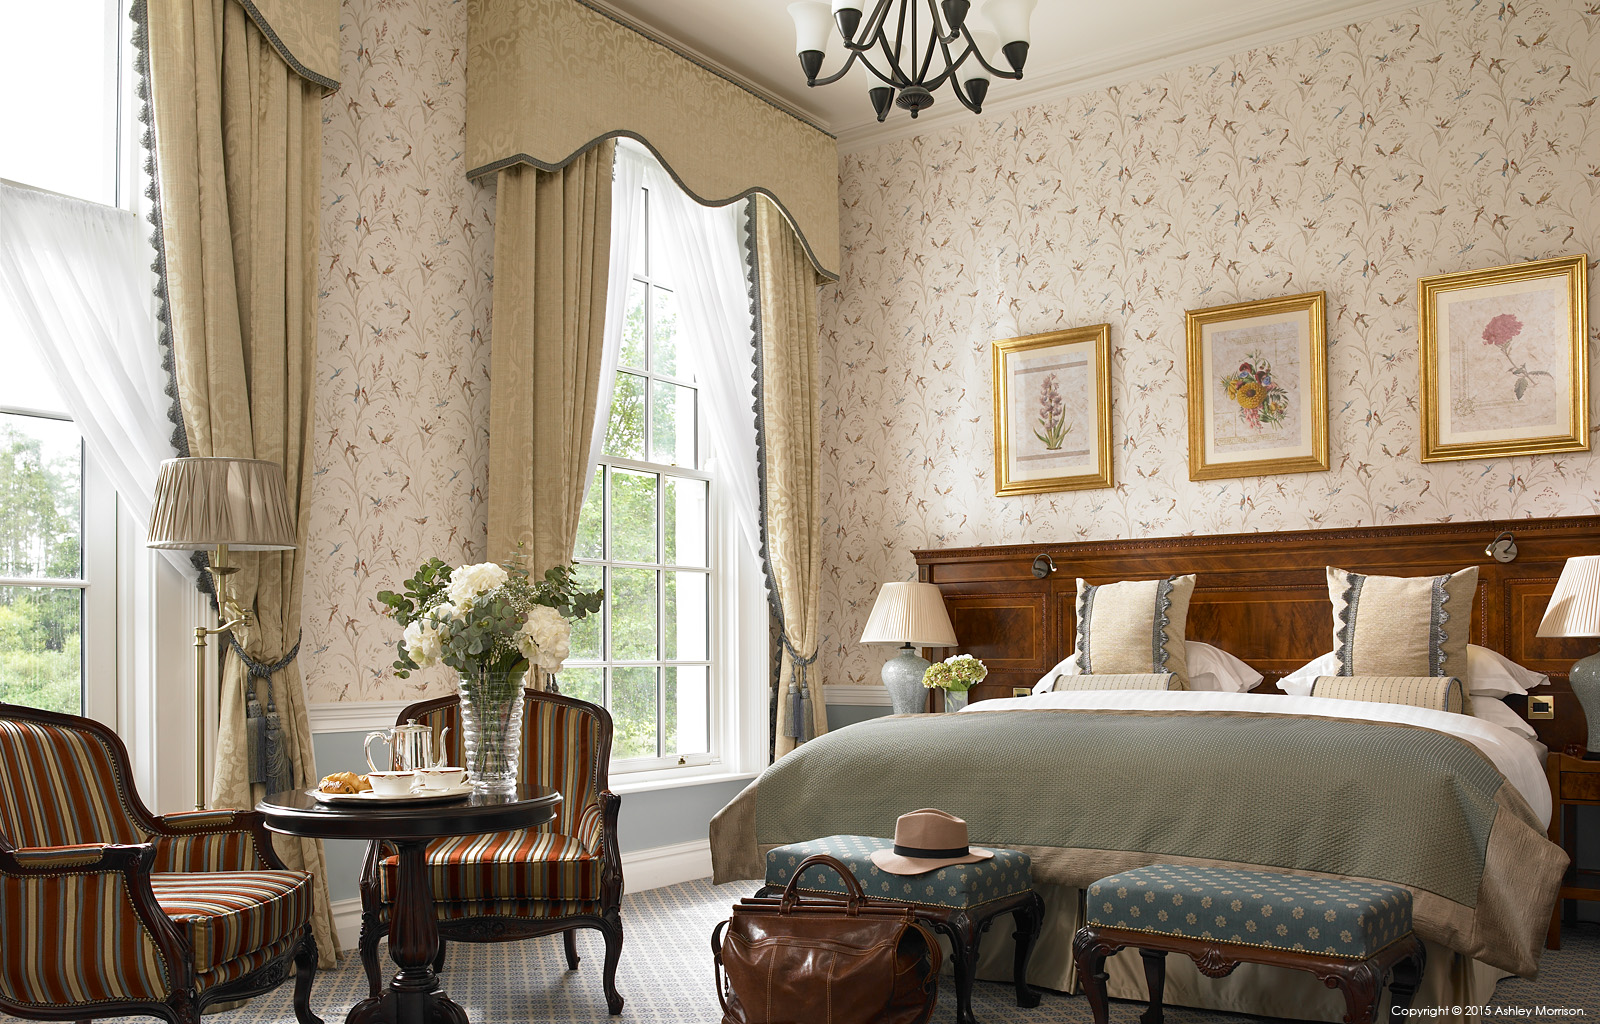 Liffey Deluxe bedroom at the Kildare Hotel Spa & Golf Club near Straffan in County Kildare.